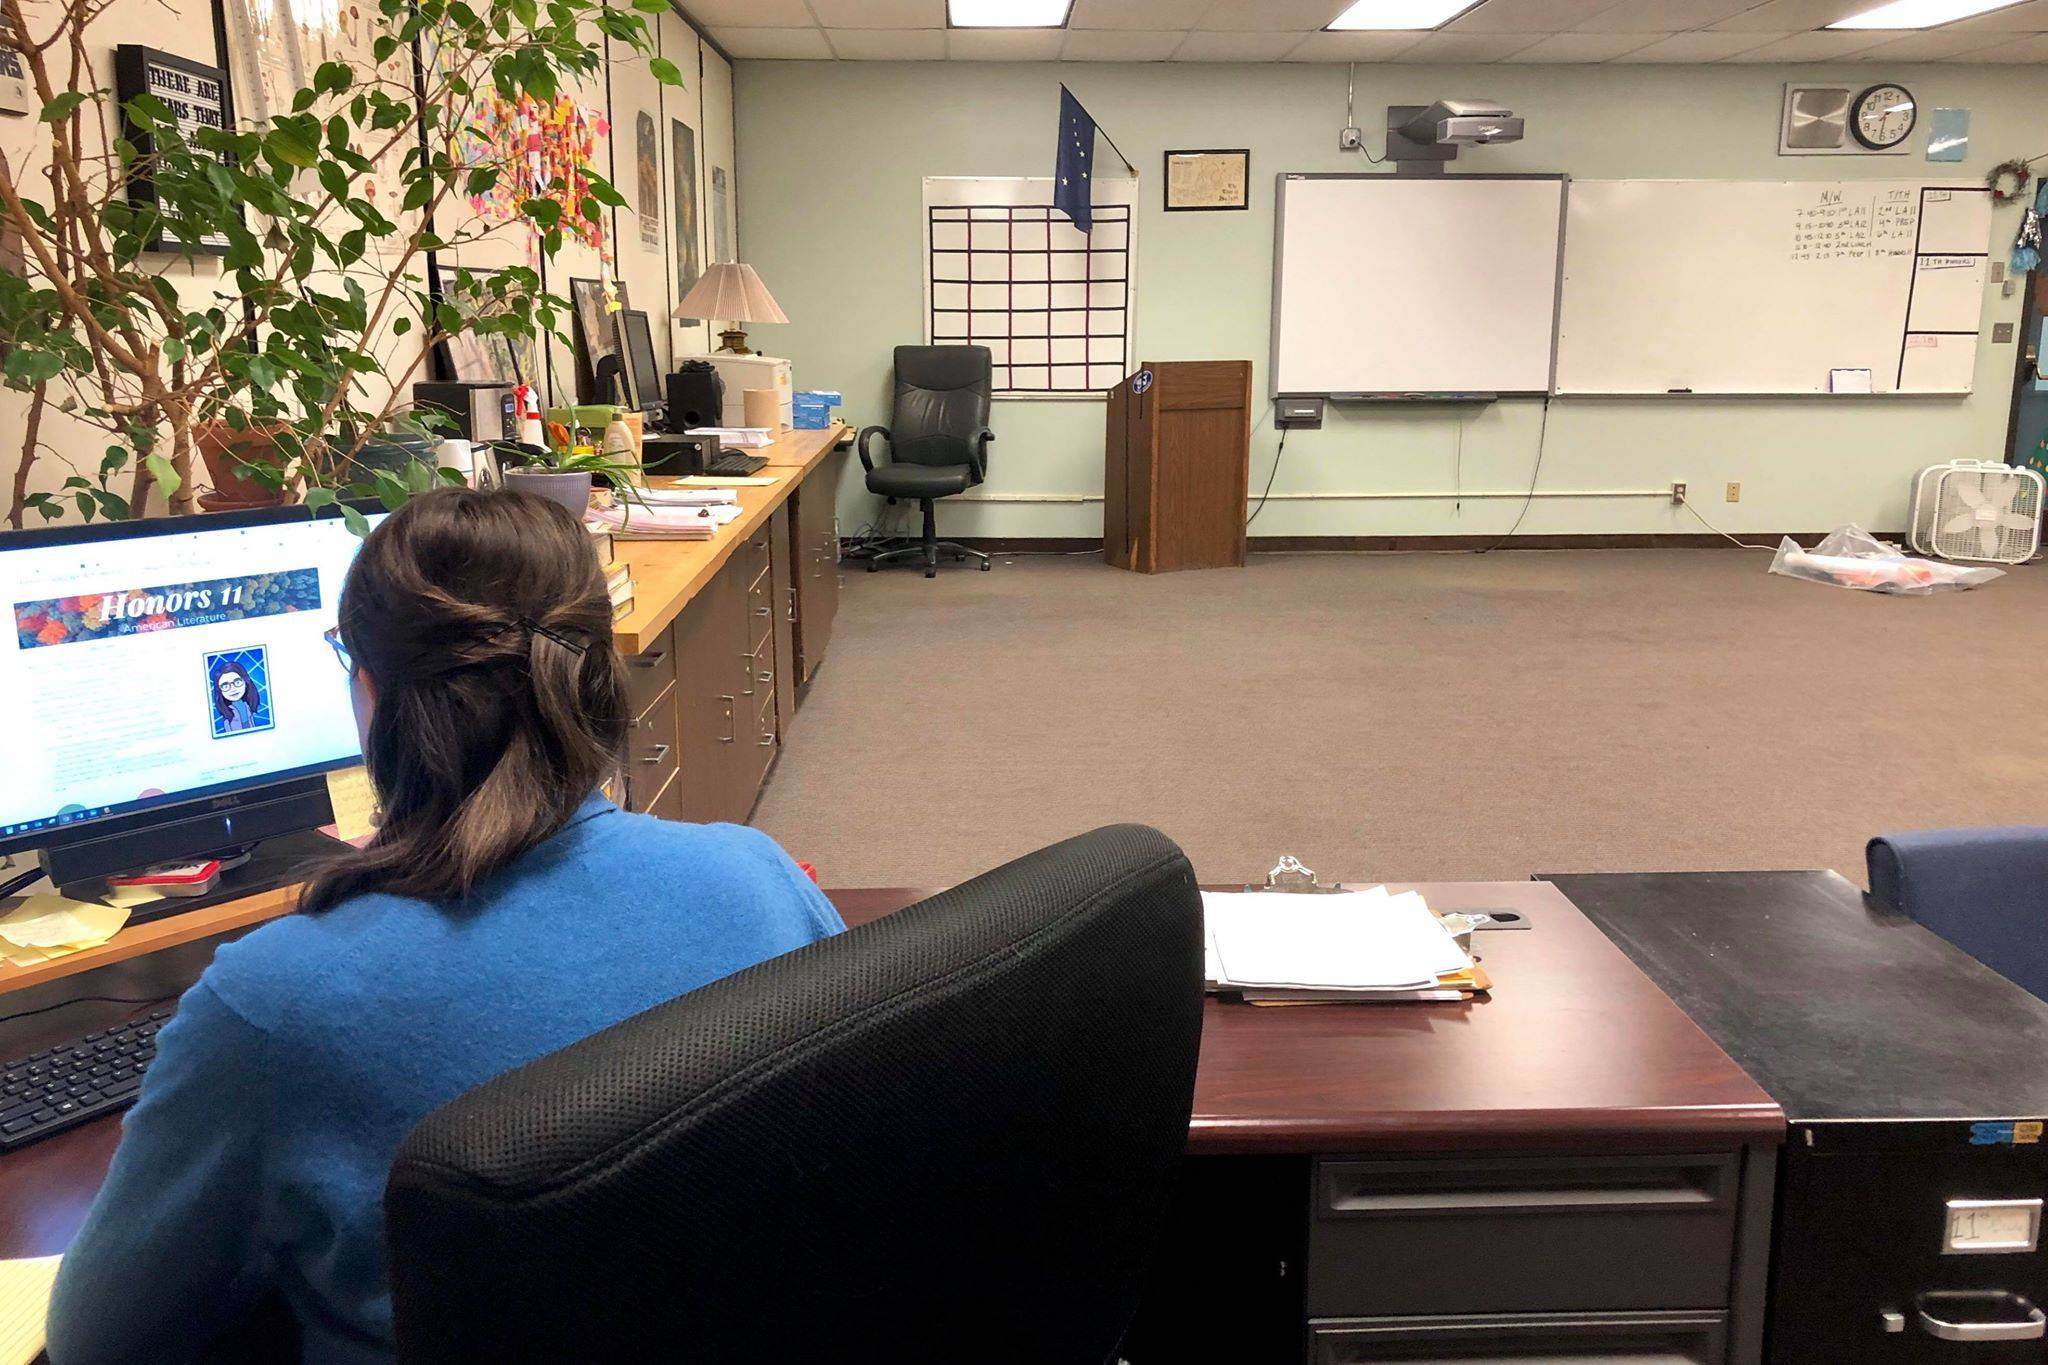 Soldotna High School English teacher Nicole Hewitt teaches her students remotely from her empty classroom at Soldotna High School on Monday, April 6, 2020 in Soldotna, Alaska. (Photo by Victoria Petersen/Peninsula Clarion)